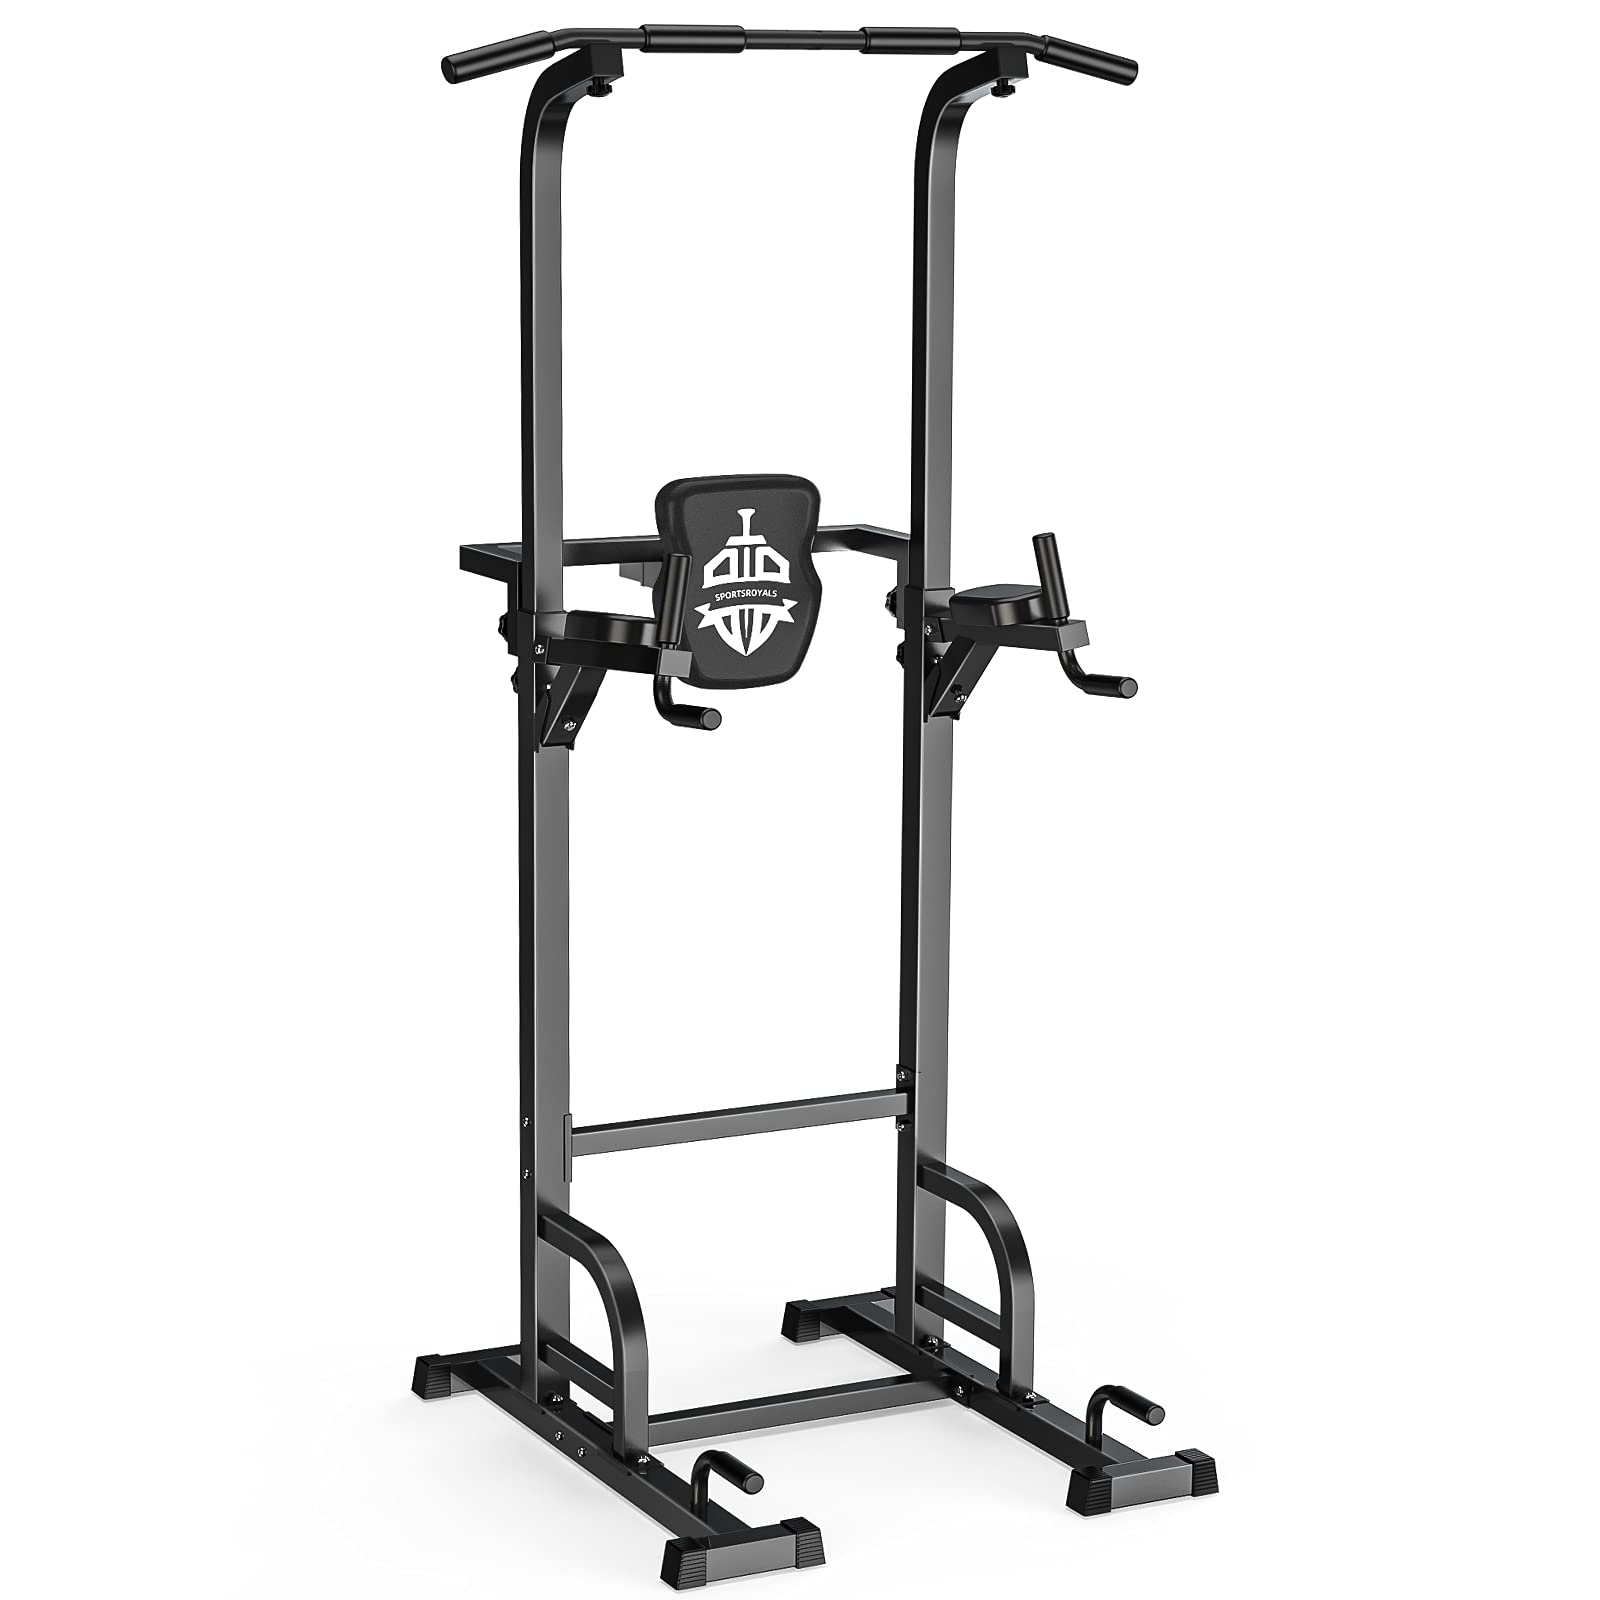 Sportsroyals Power Tower Dip Station Pull Up Bar for Home Gym Strength Training Workout Equipment, 400LBS.